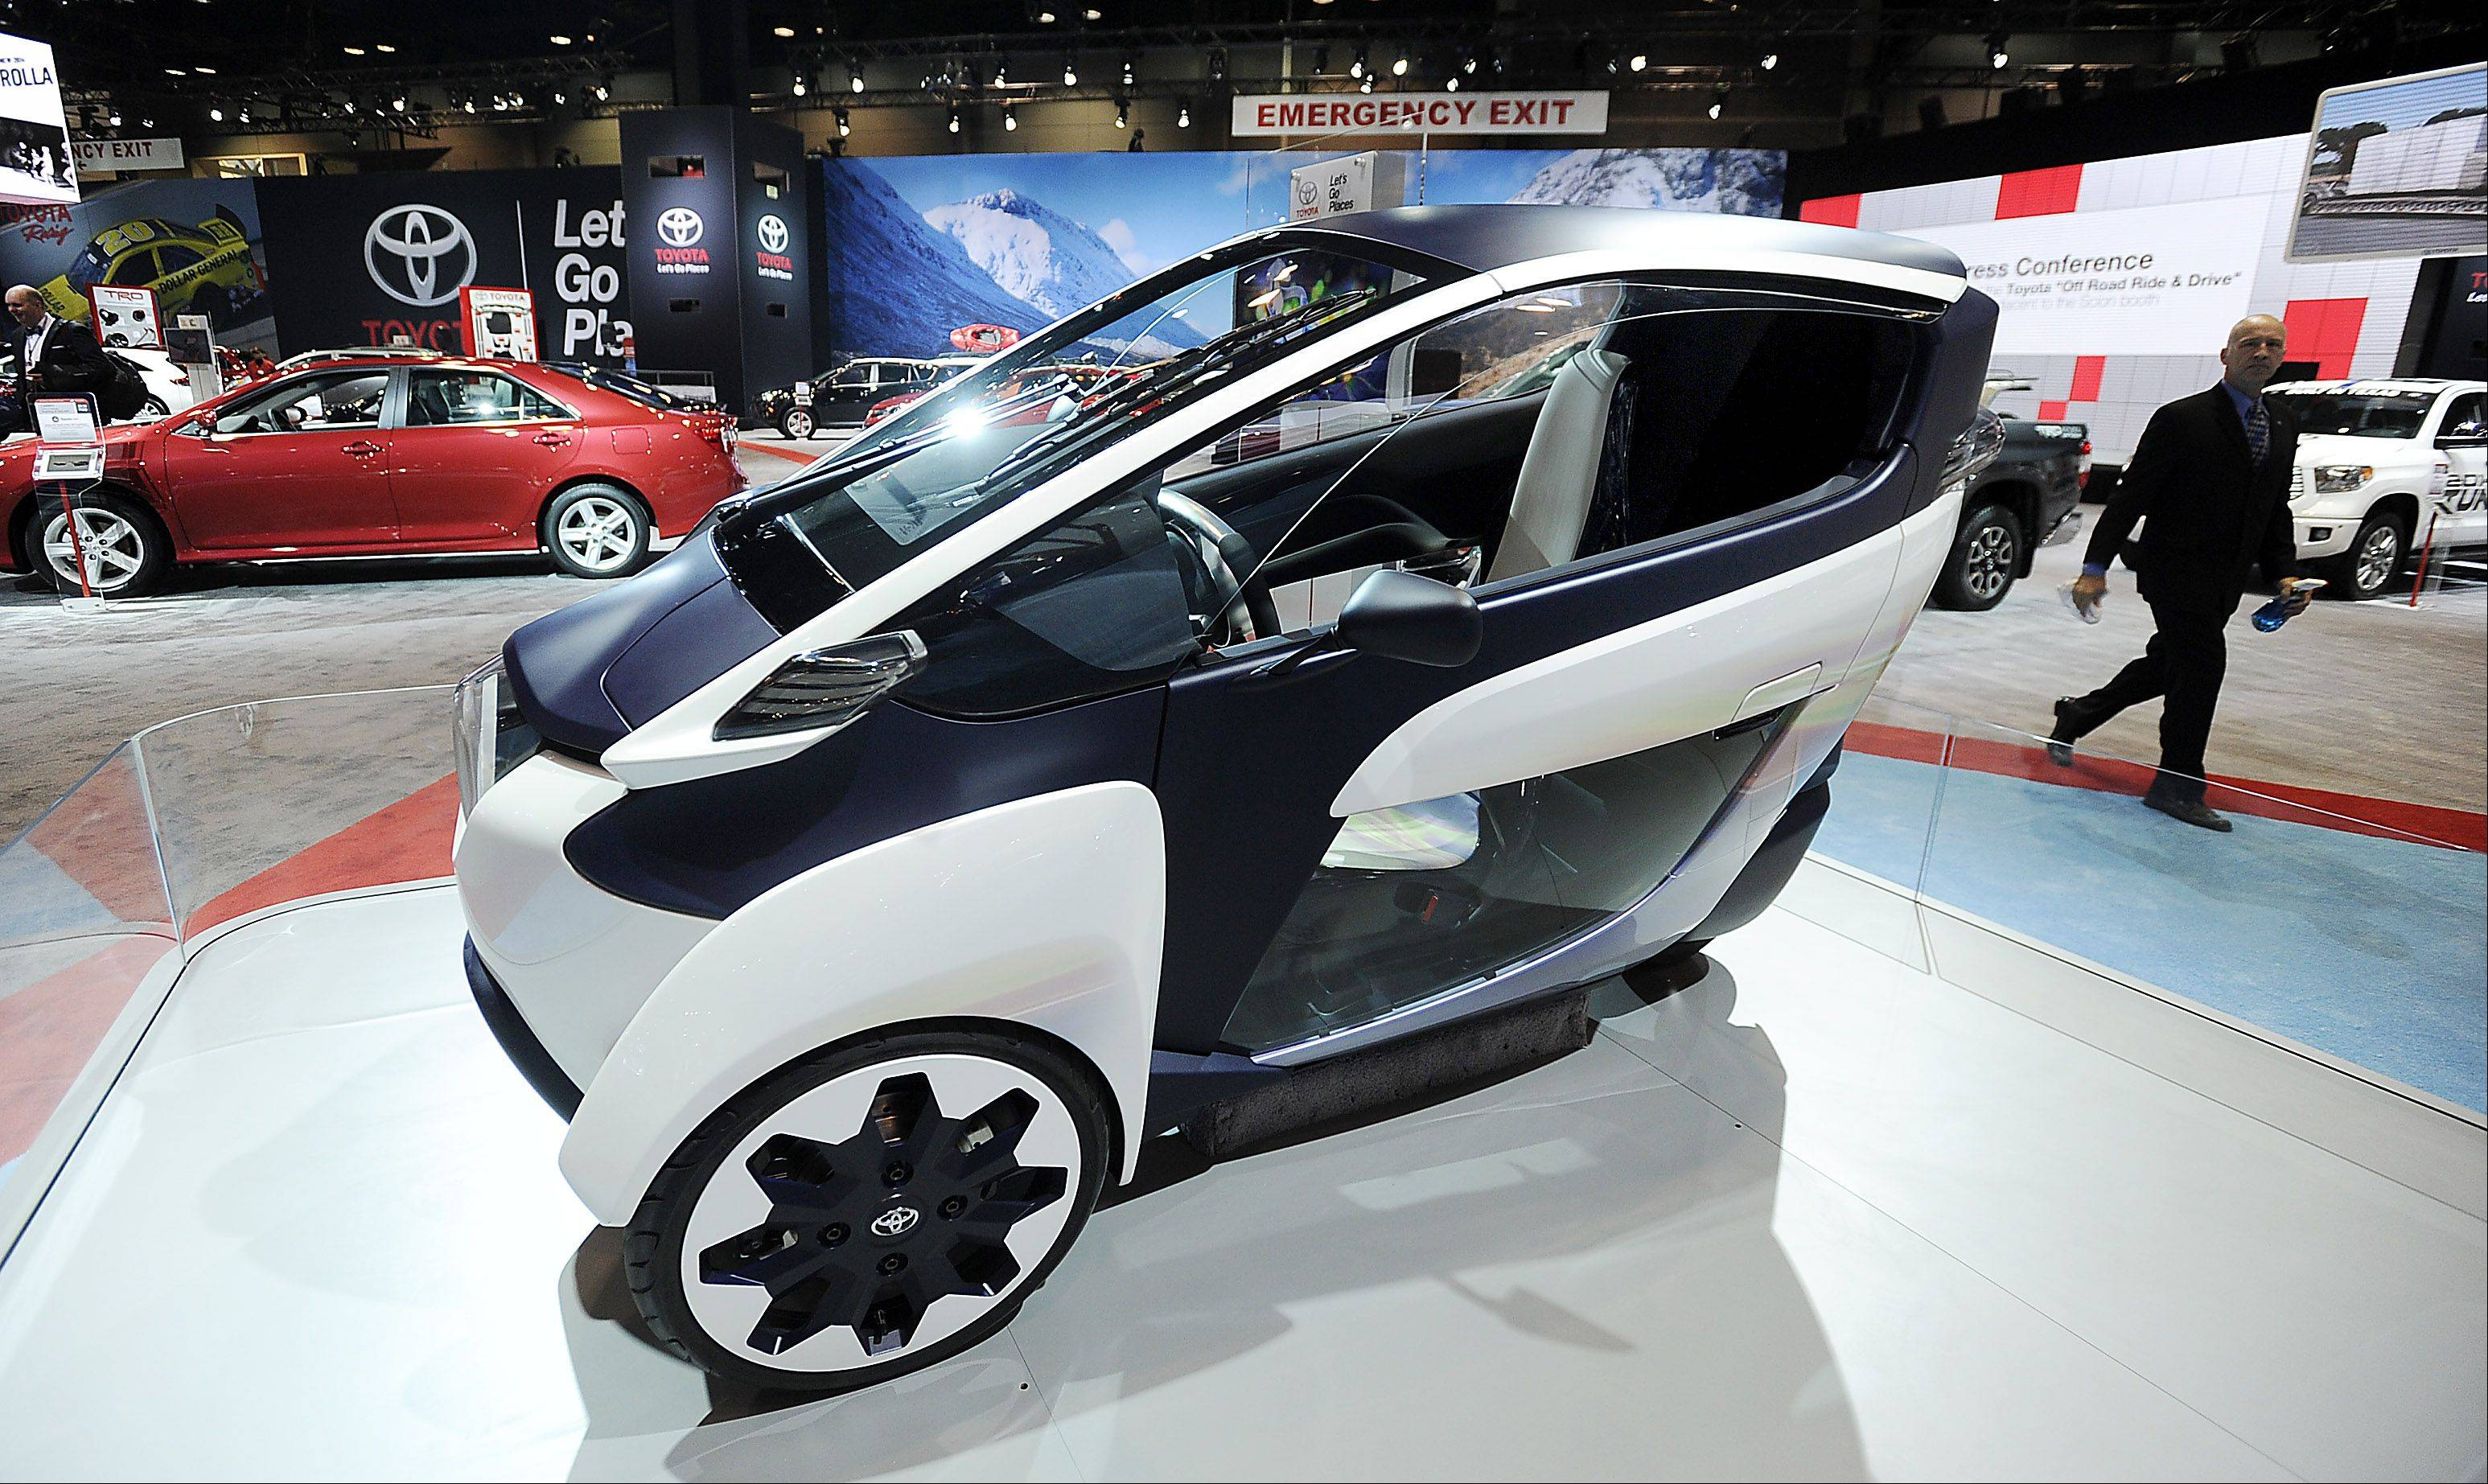 The three-wheeled Toyota Concept car iROAD will surely be a big hit with auto fans once they see how it moves on the street.